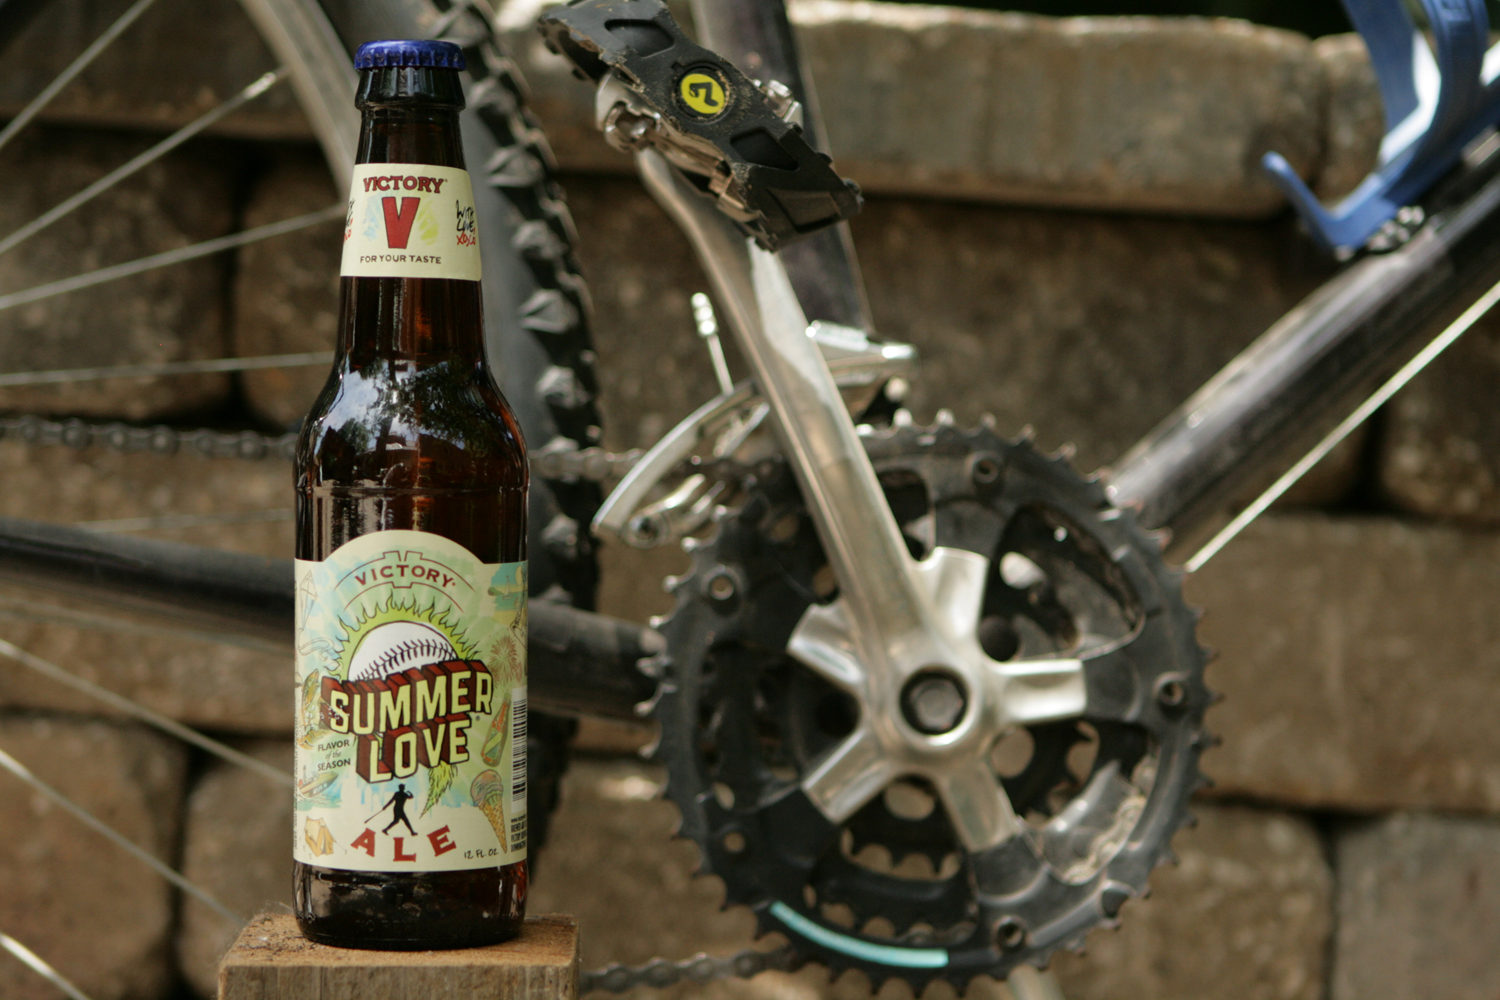 Summer Love Ale is a wonderful seasonal beer.